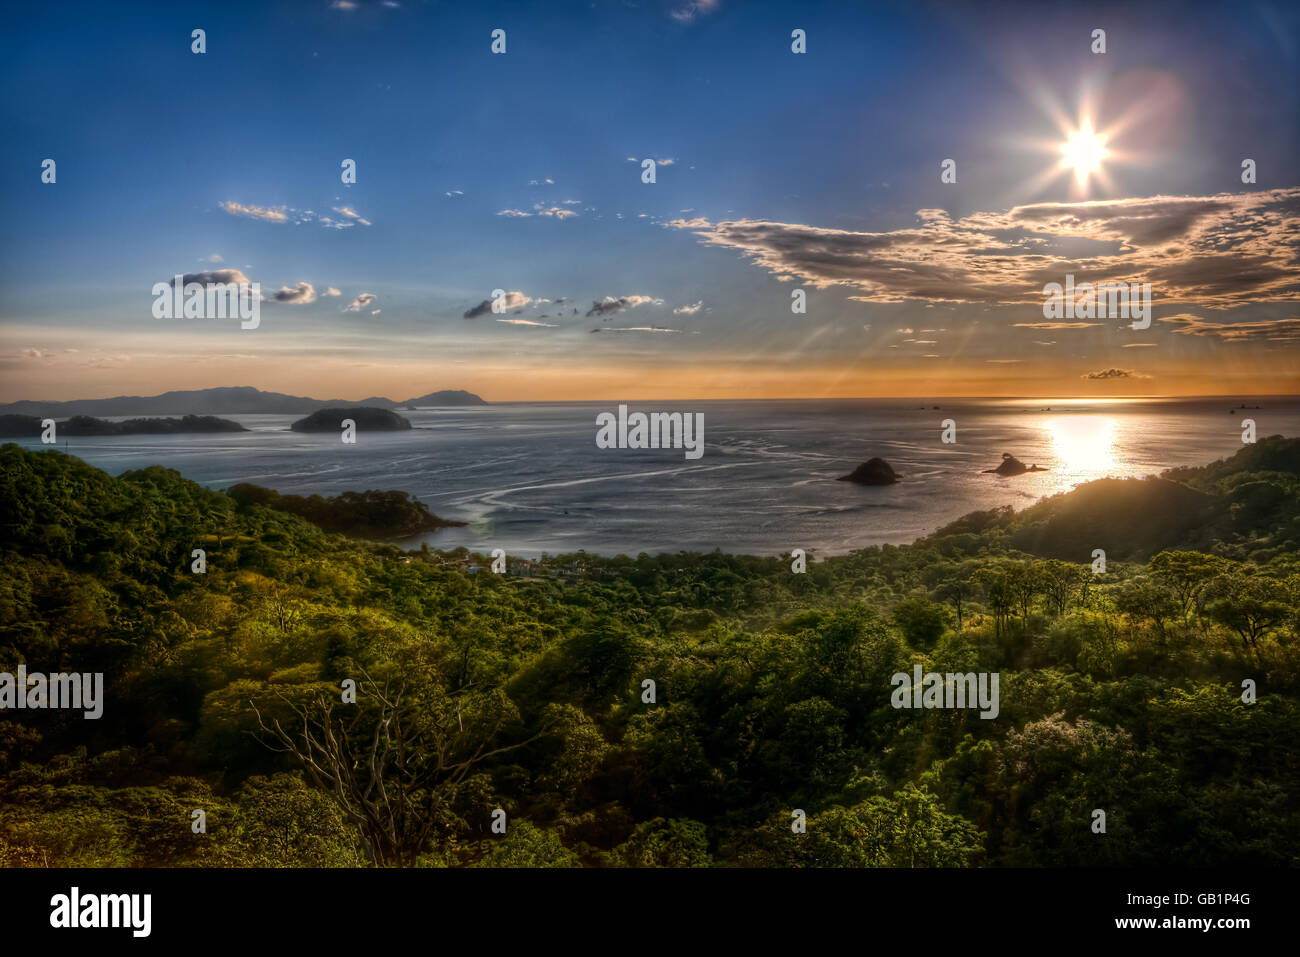 Beautiful view of sunset over the Potrero bay and Playa Azucar, Costa Rica, Guanacaste. - Stock Image